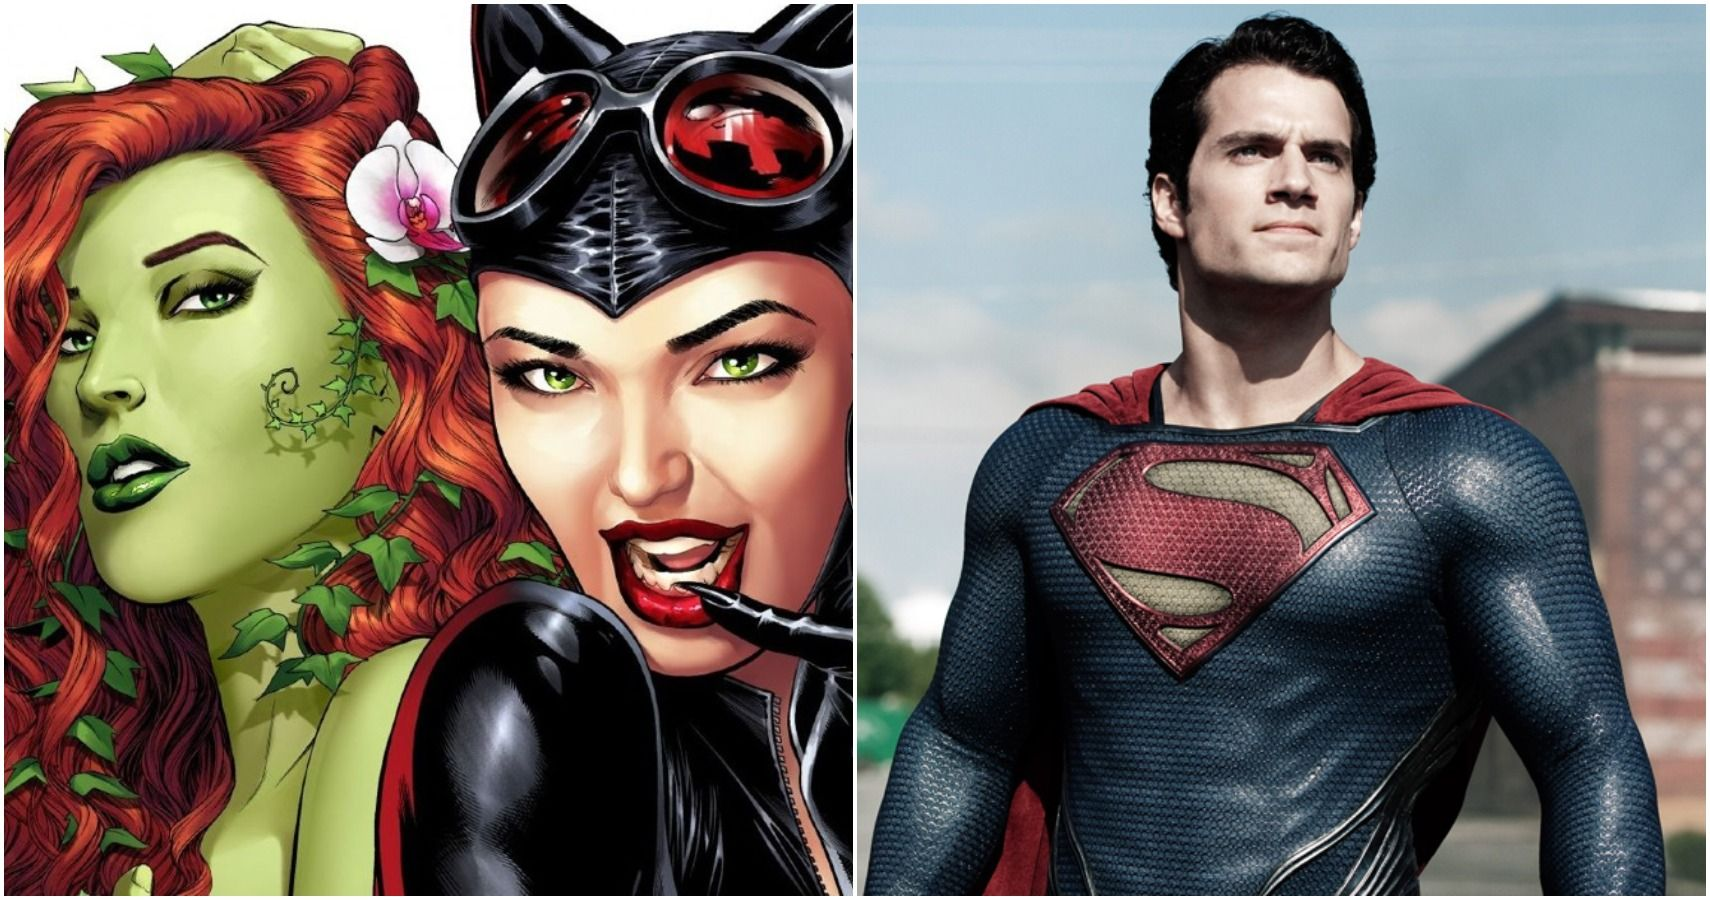 DCEU: 5 Rumored Projects Fans Would Love To See (& 5 They Wouldn't)